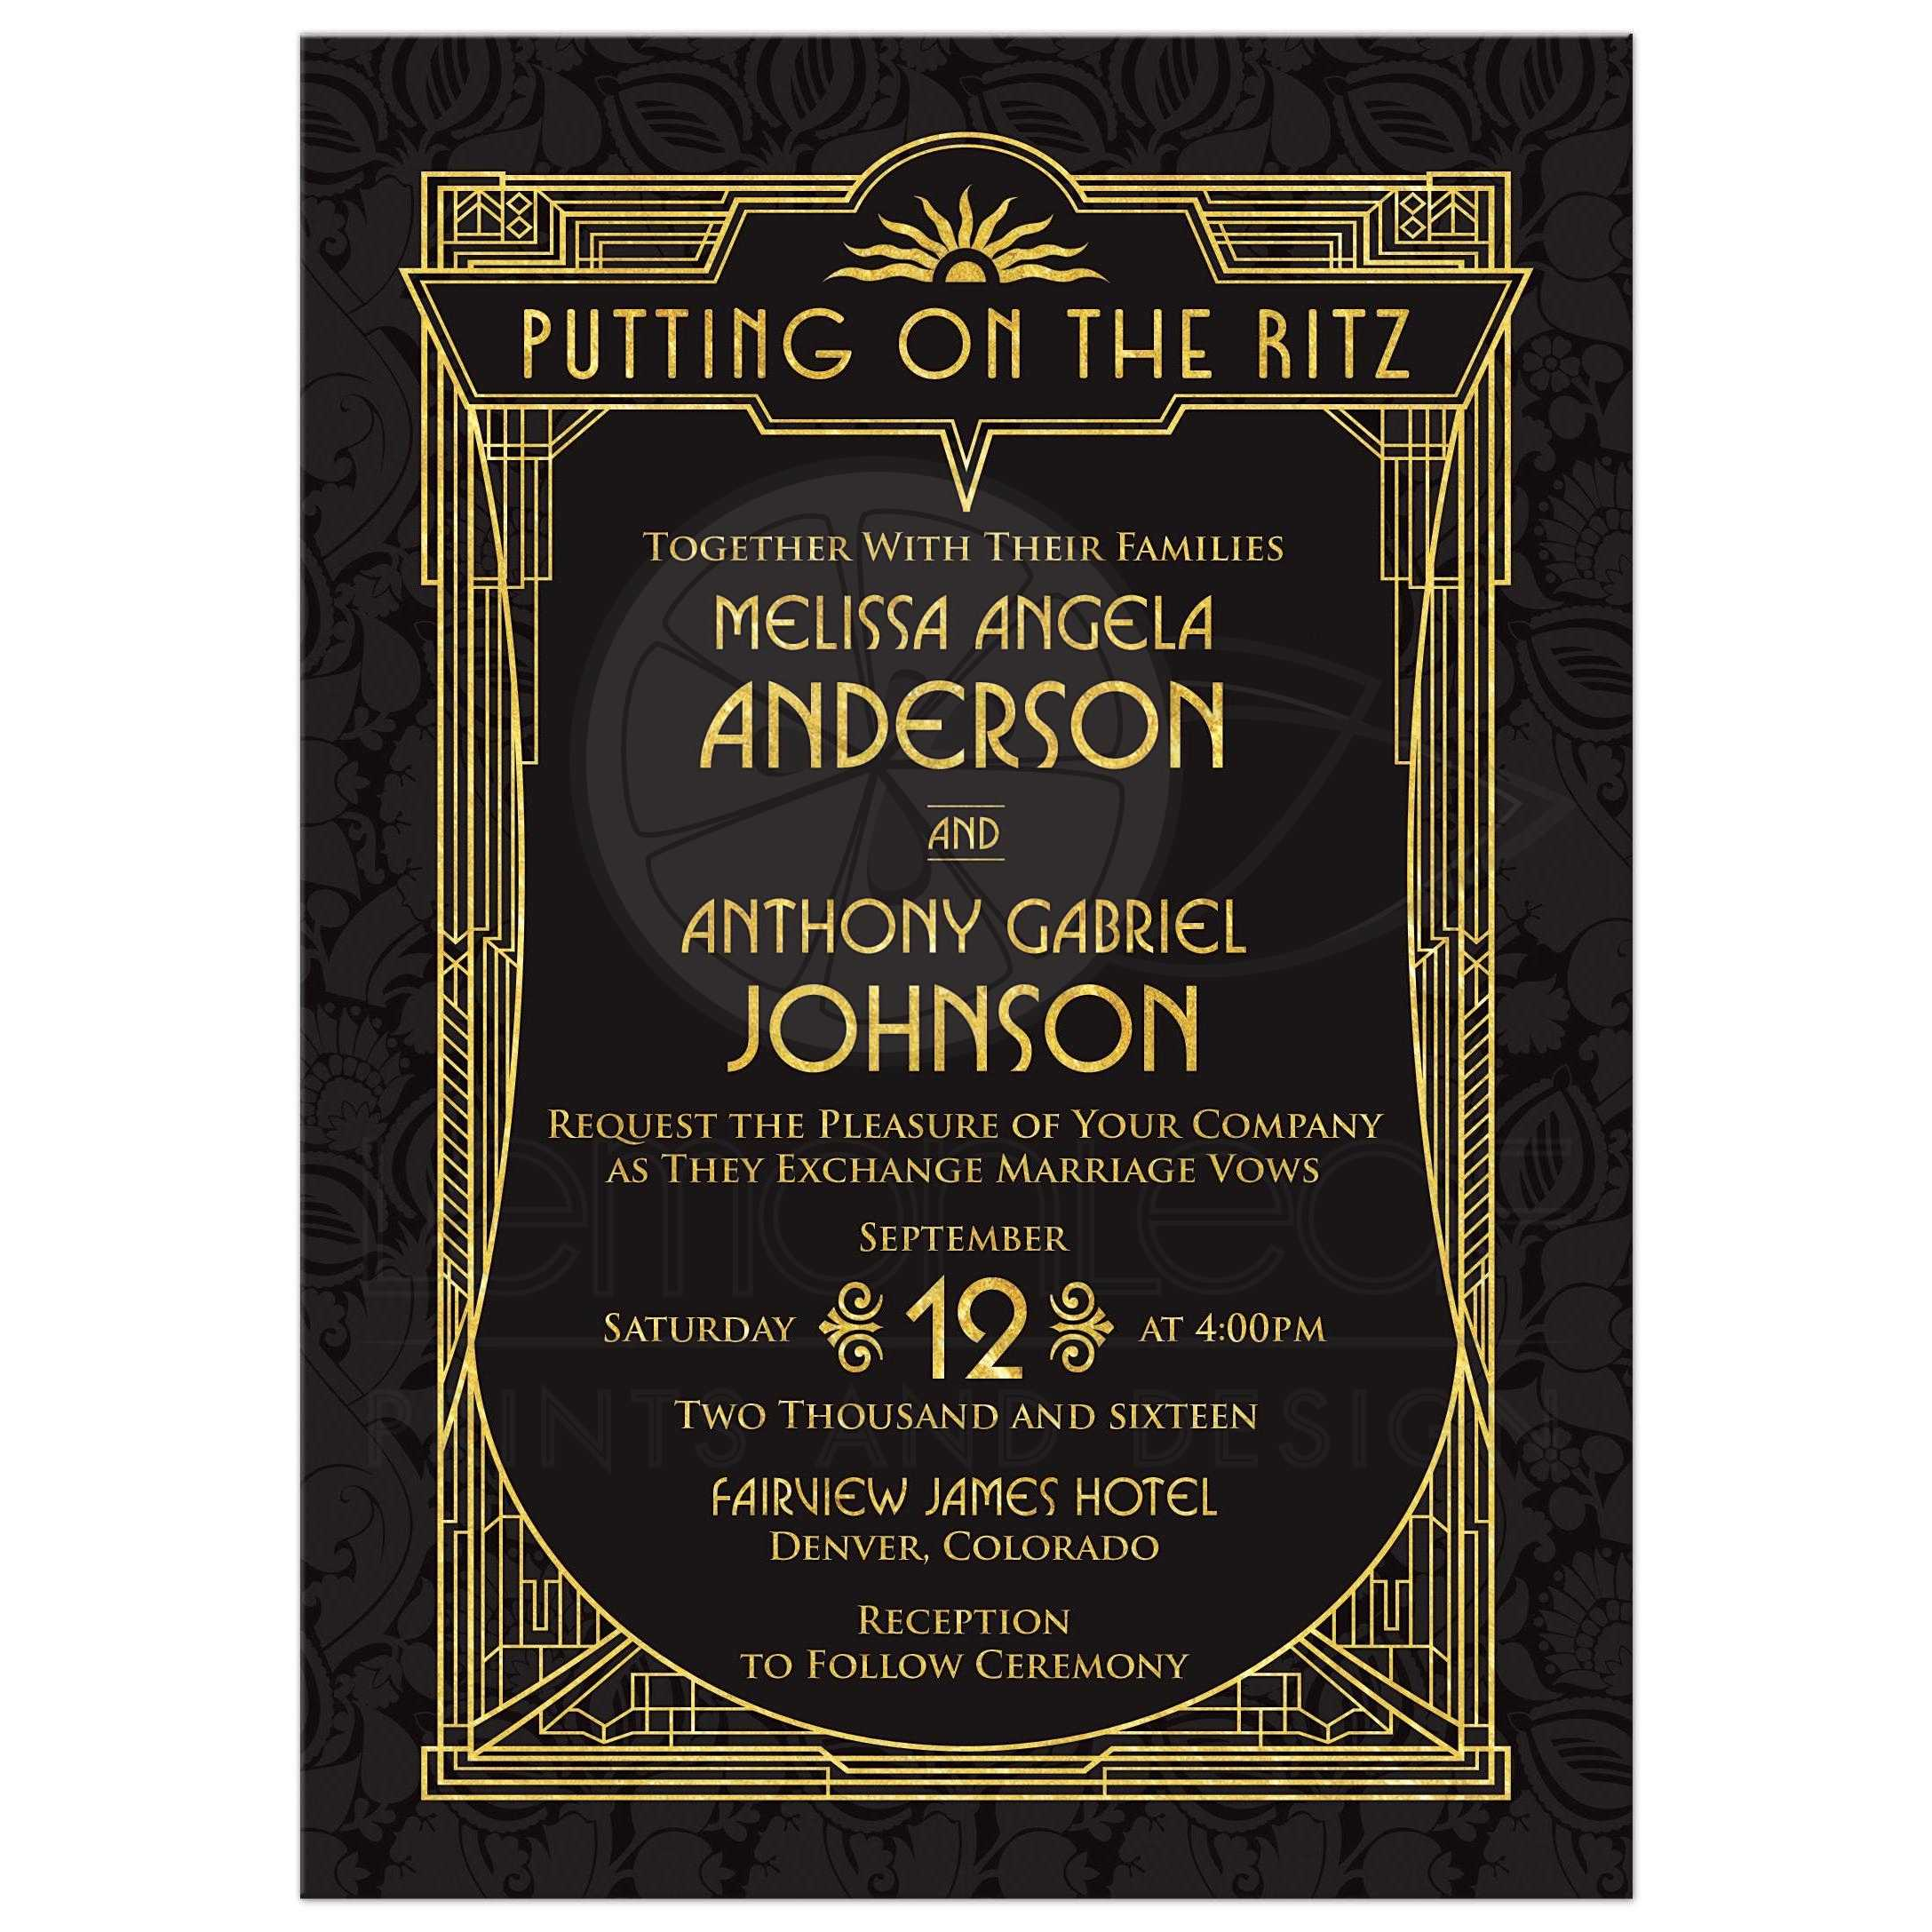 Art Deco Wedding Invitation Black Gold Roaring 20s Gatsby Style